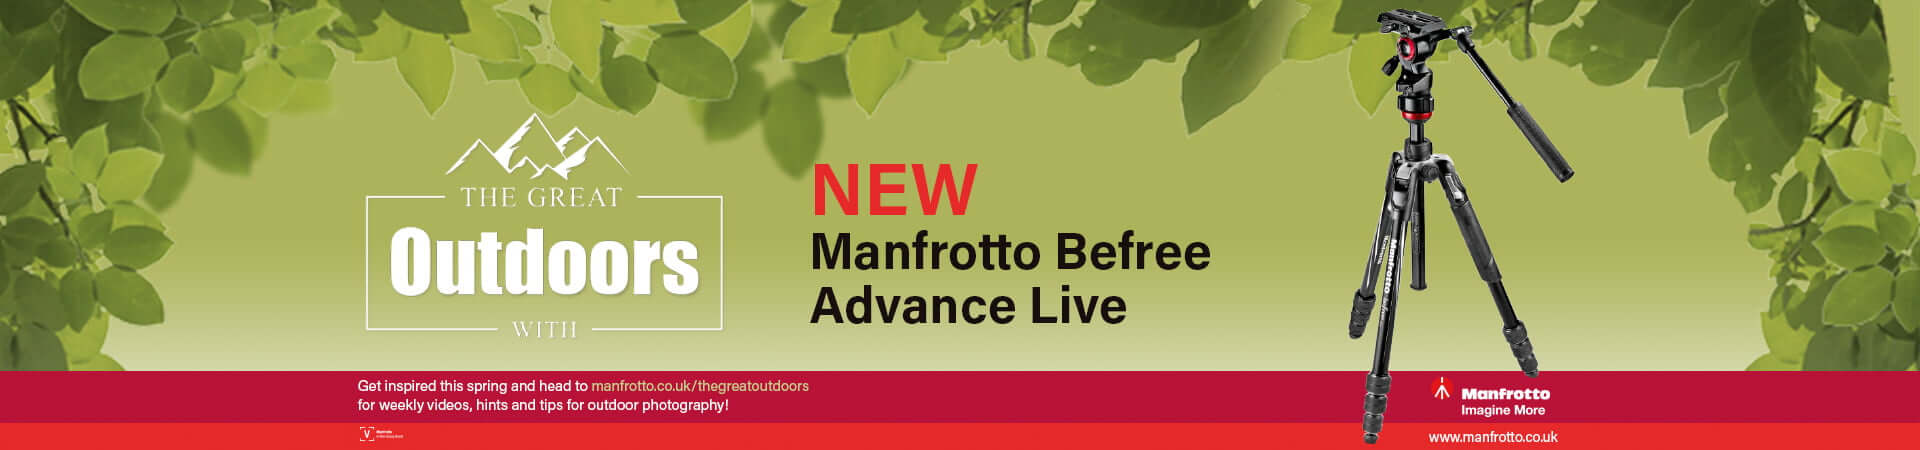 Manfrotto-Befree-Advanced-Live.jpg